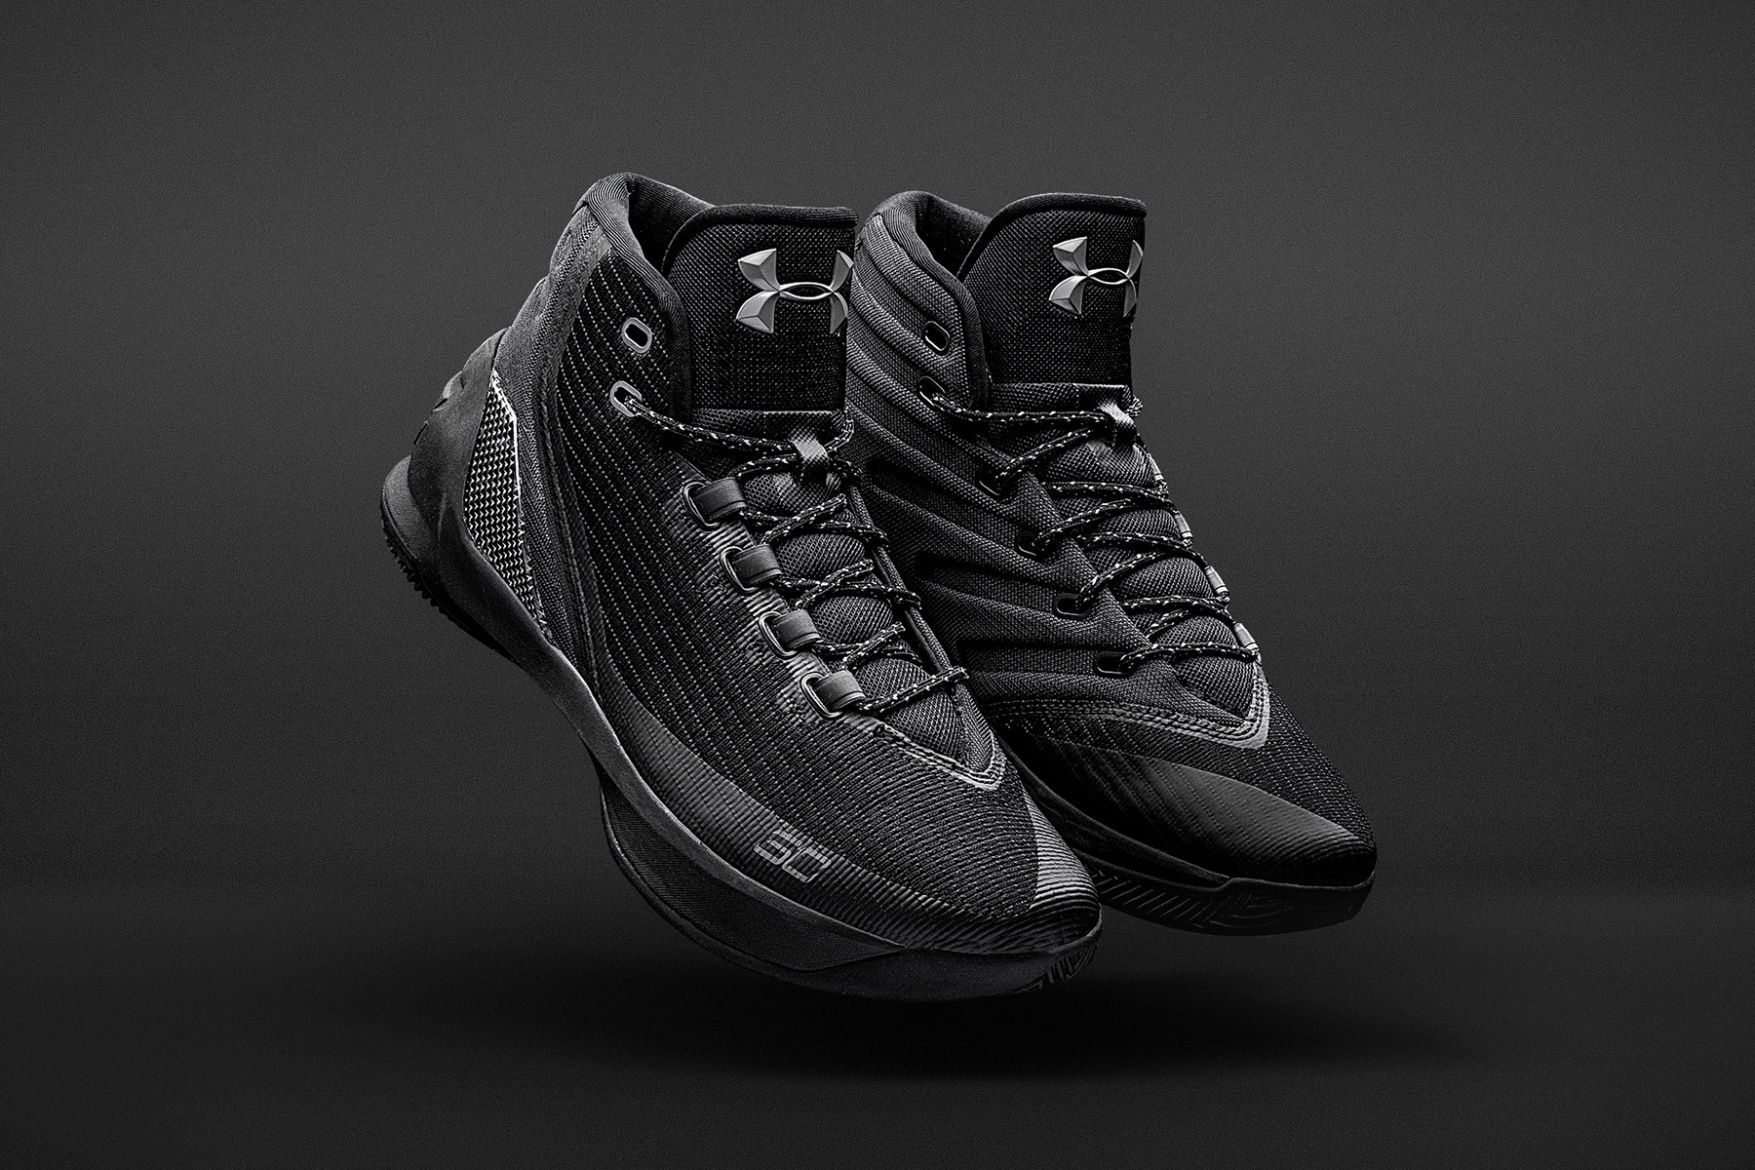 6d84240b19f Stephen Curry 最新戰靴 Under Armour Curry 3「Trifecta Black」配色 .